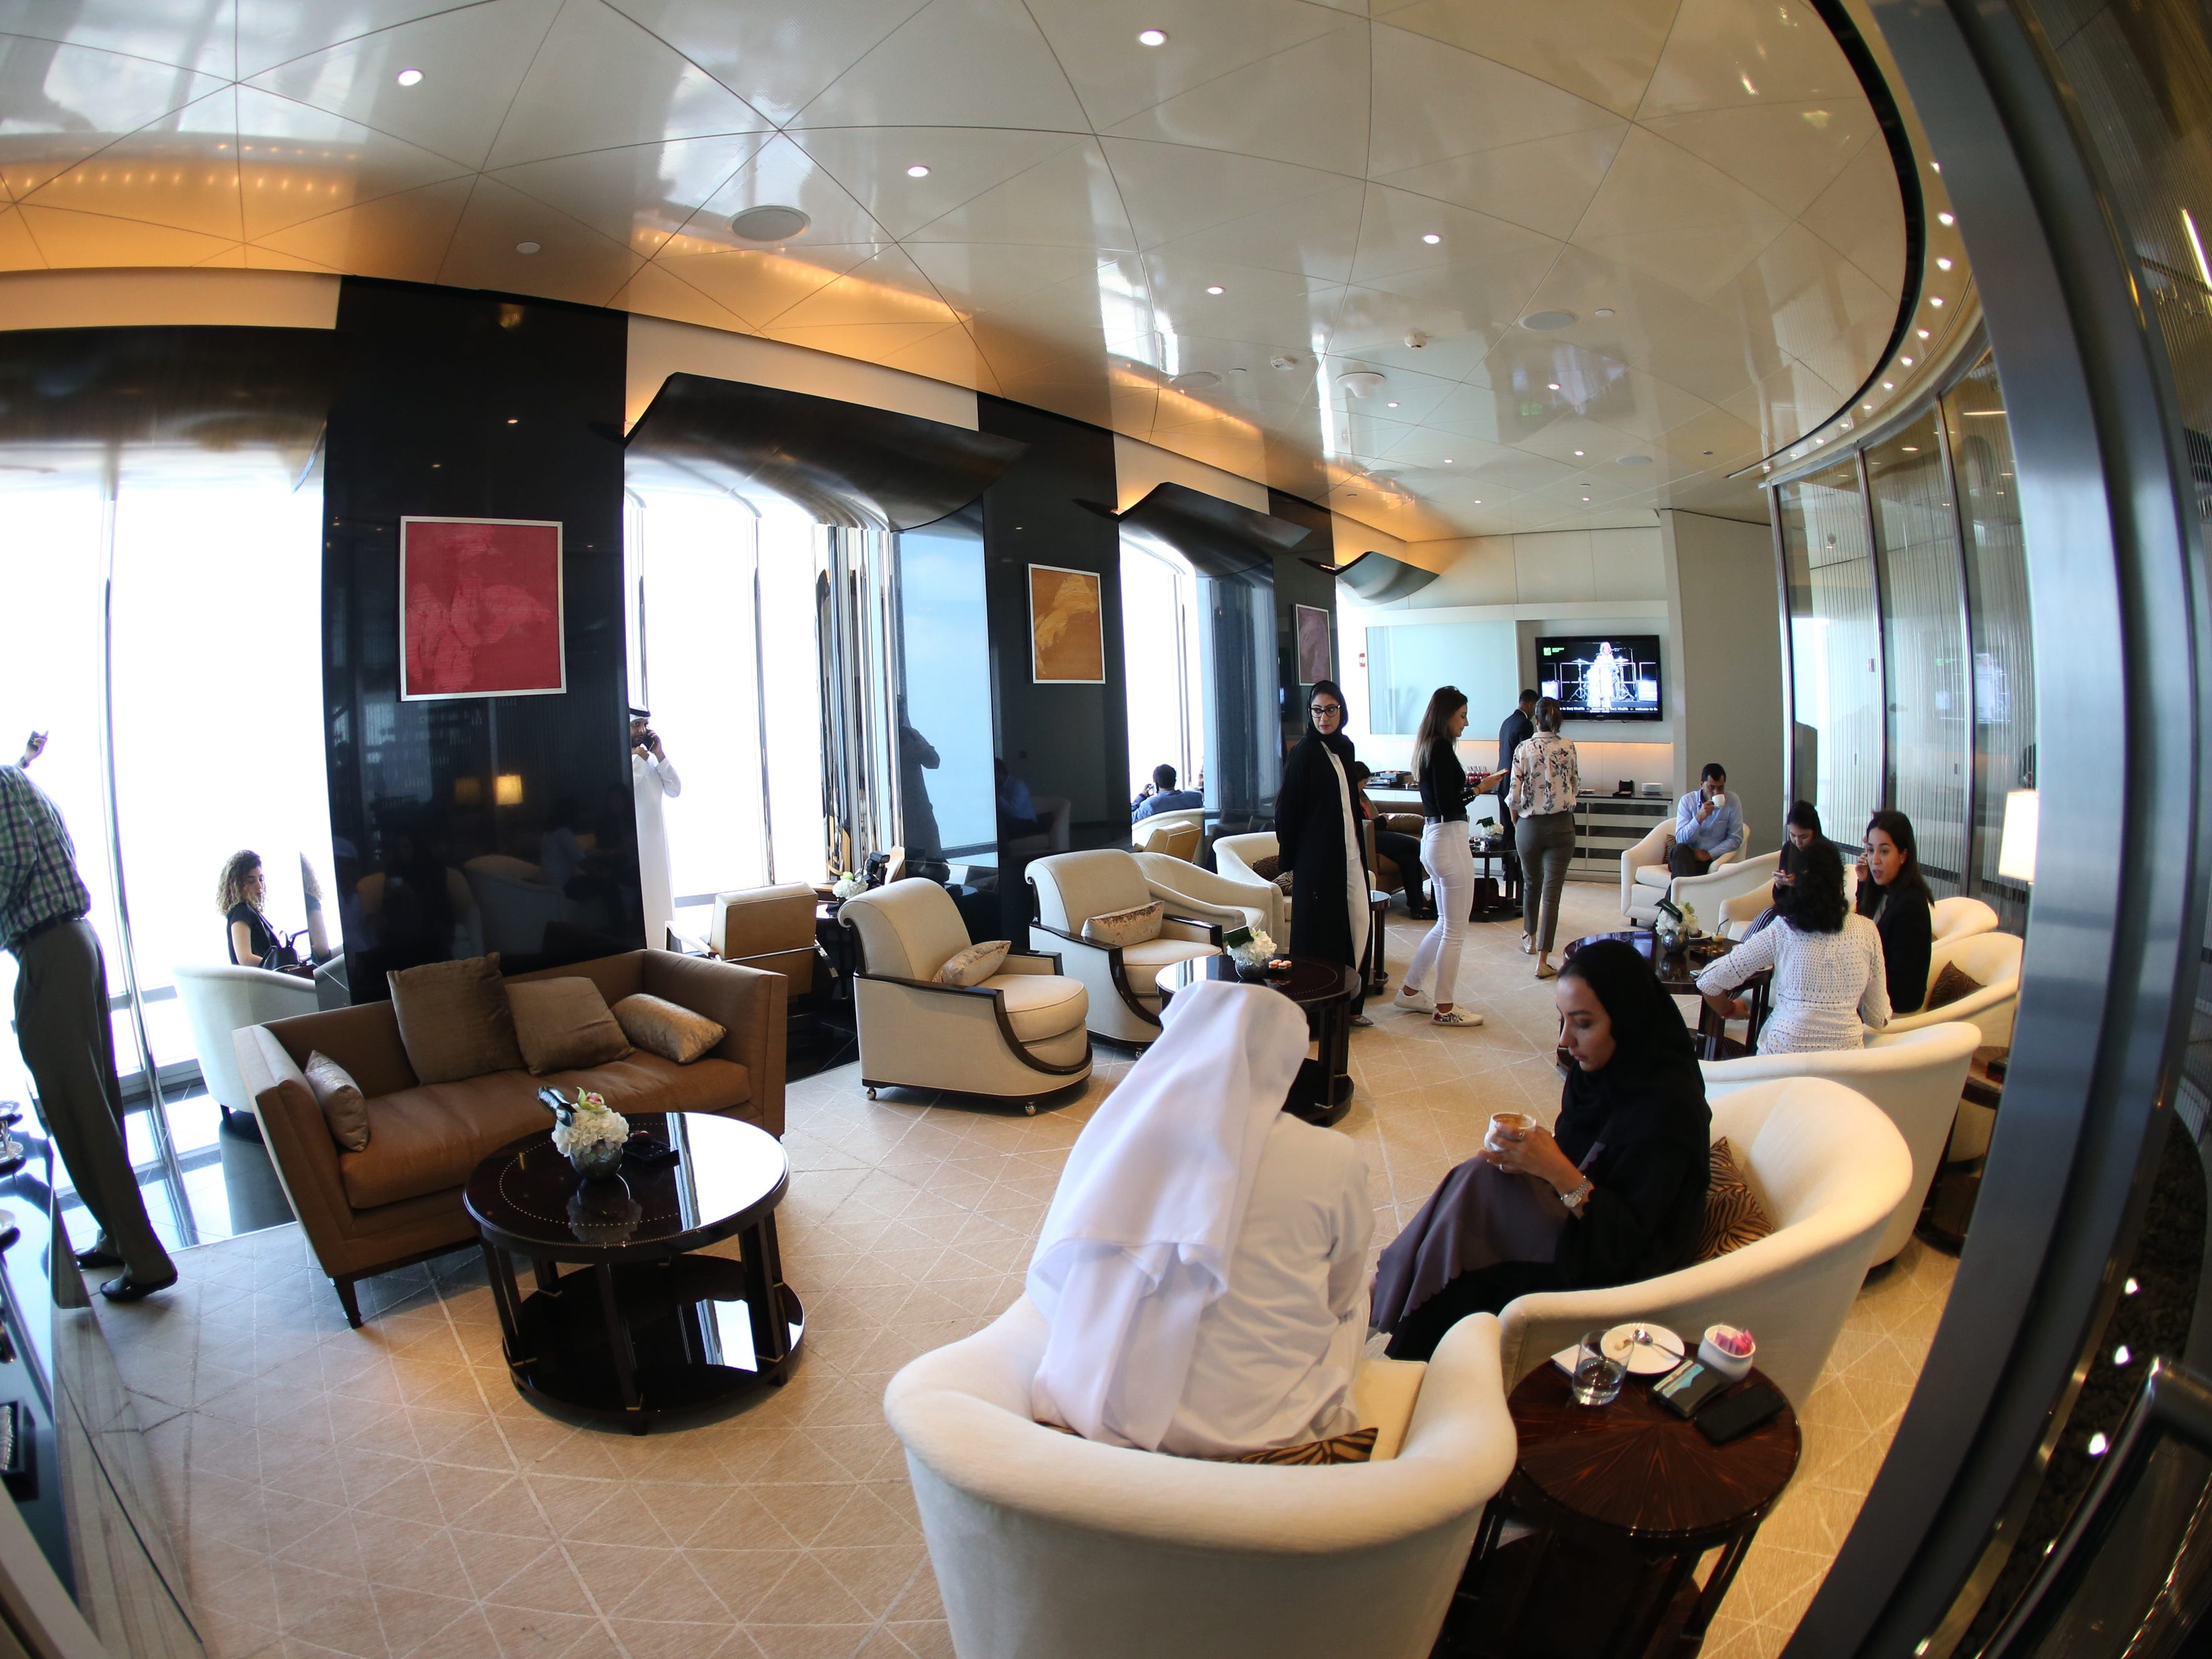 epa07366407 A picture taken with a fish eye lens shows people enjoying at the new highest lounge in the world at Burj Khalifa in Dubai, United Arab Emirates, 13 February 2019. Ahmad Al Falasi, Executive Director Emaar Properties announced during media briefing the opening of highest lounge in the world at Burj Khalifa which is located at 152, 153 and 154 floor which have distinctive settings each assuring never before seen views of the city.  EPA-EFE/ALI HAIDER ORG XMIT: XAH001